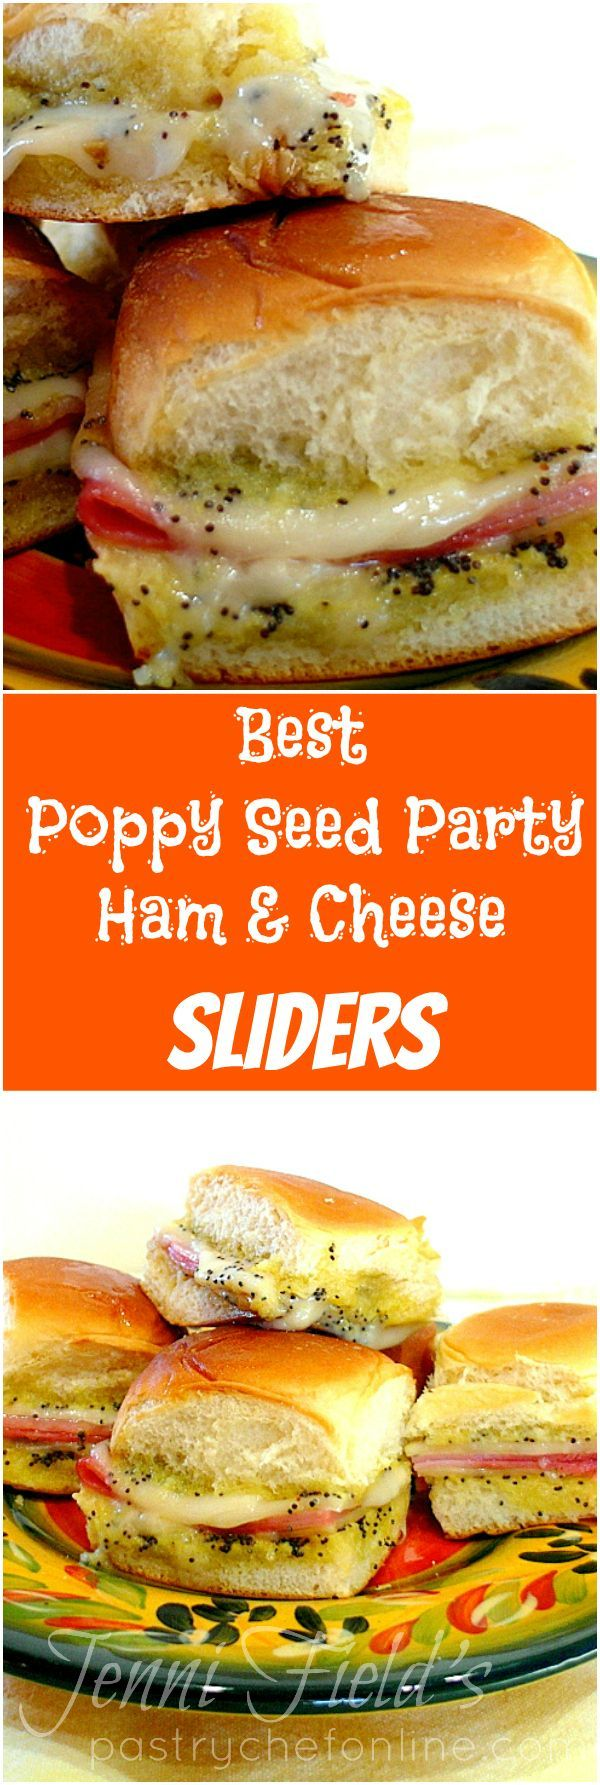 I grew up calling these poppy seed party ham biscuits. You might know them as poppy seed ham and cheese sliders. Either way, they are the perfect party food recipe, and this version, the version everyone in my childhood neighborhood used to make, is the very best ham and cheese slider recipe. Honest. | http://pastrychefonline.com